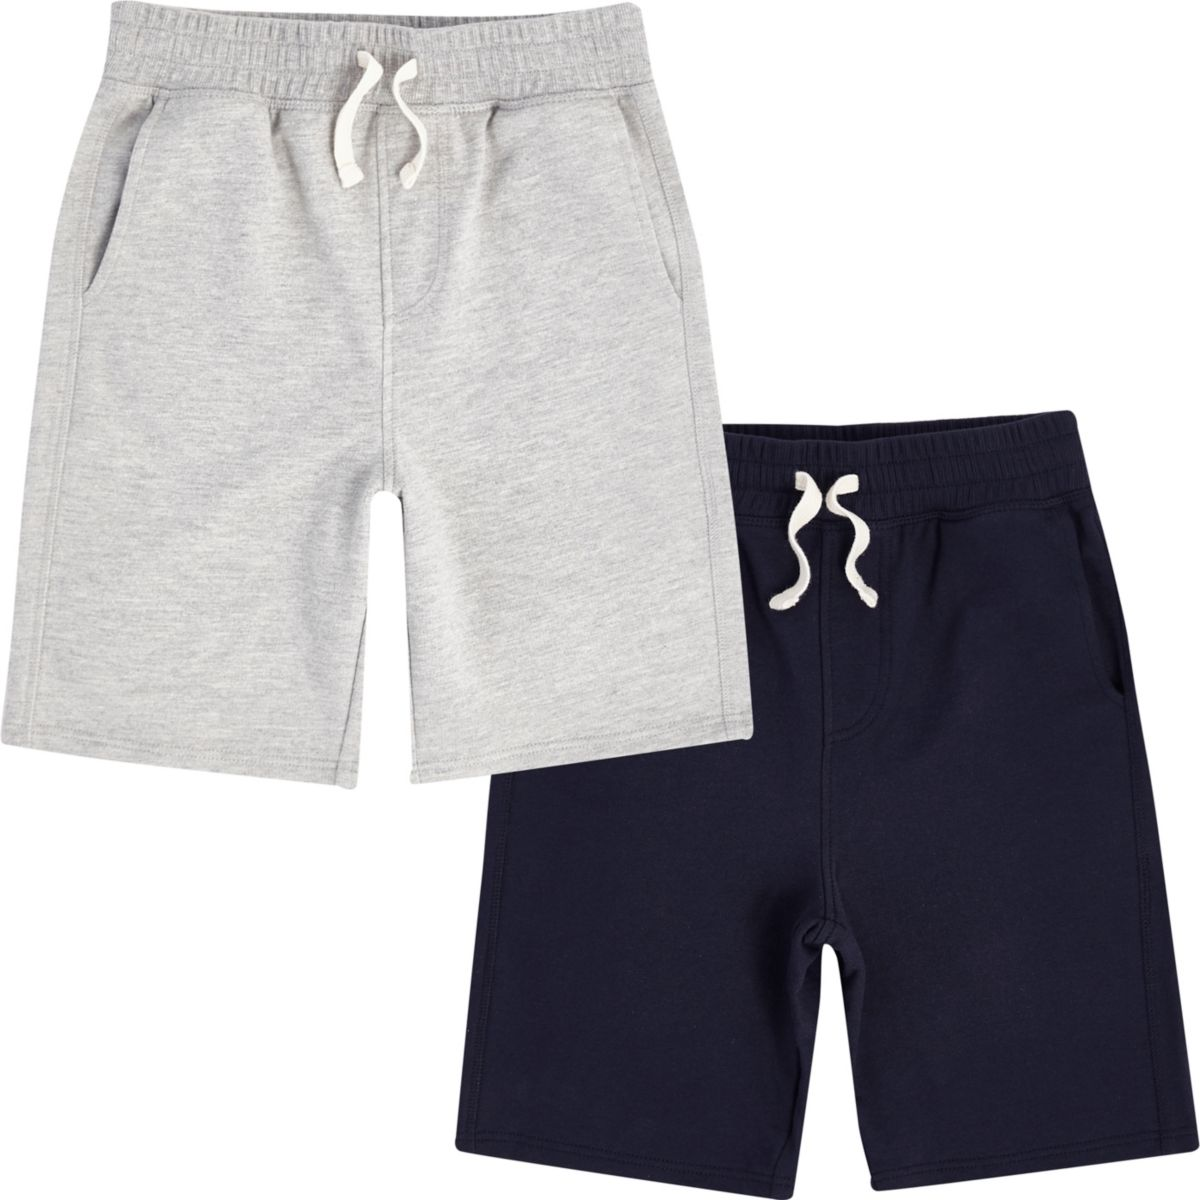 Boy's Shorts - Designed for unstoppable play, our boys' shorts feature moisture-wicking technology, tag-free labels, and soft jersey cotton fabrics. Our super soft yet durable cotton blend boys' pants are made with fleece for added warmth and feature a covered elastic waist for a non-binding fit.